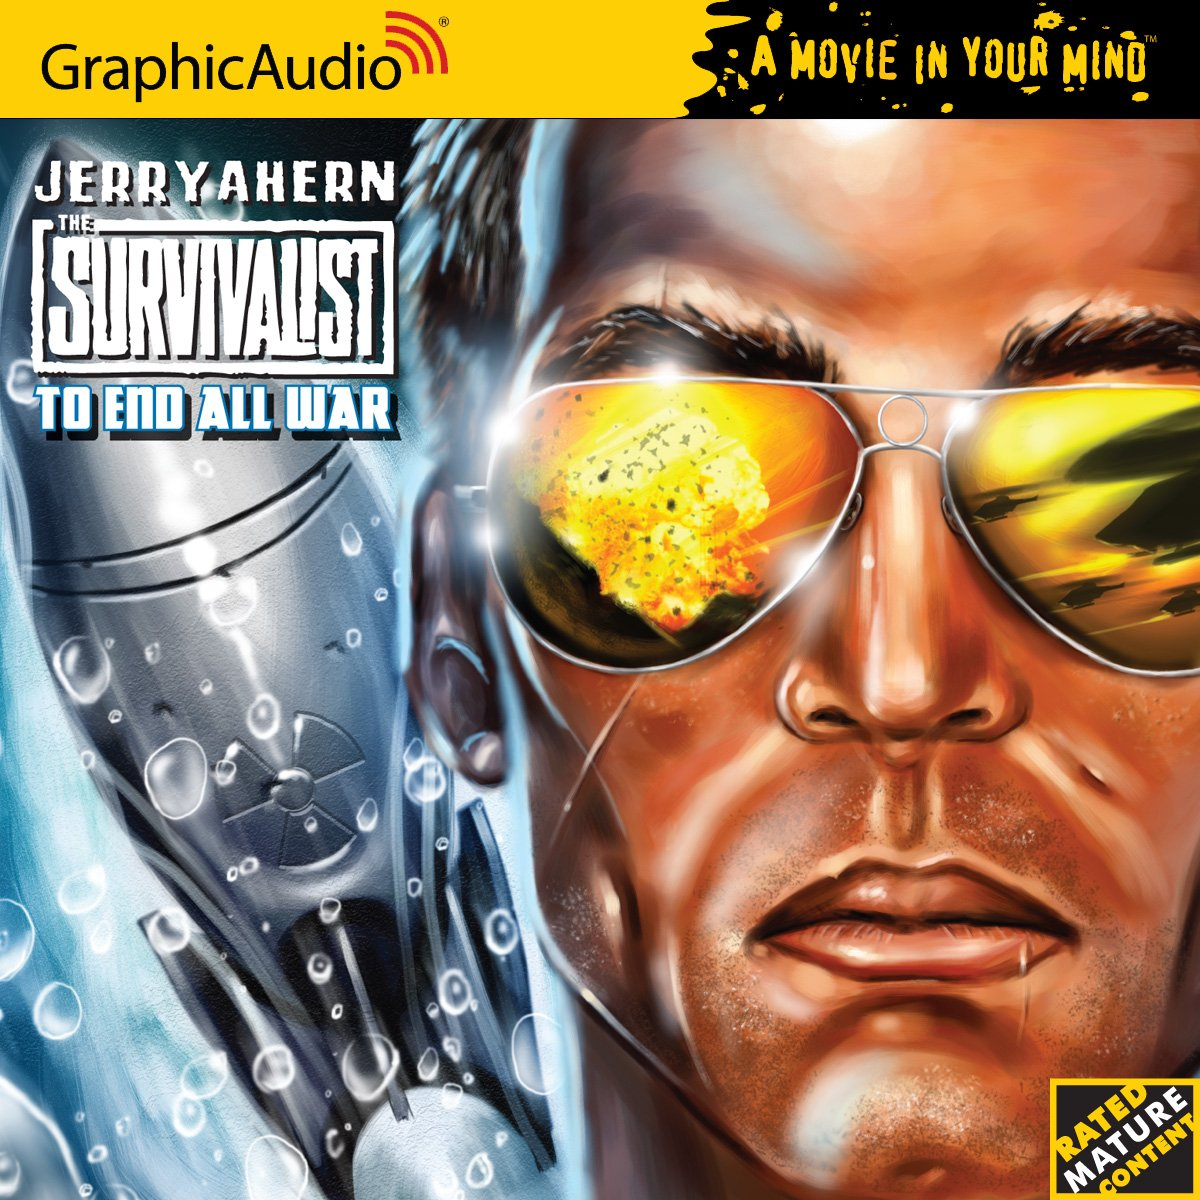 The Survivalist 21 To End All War Audio CD – Audiobook, May 1, 2010